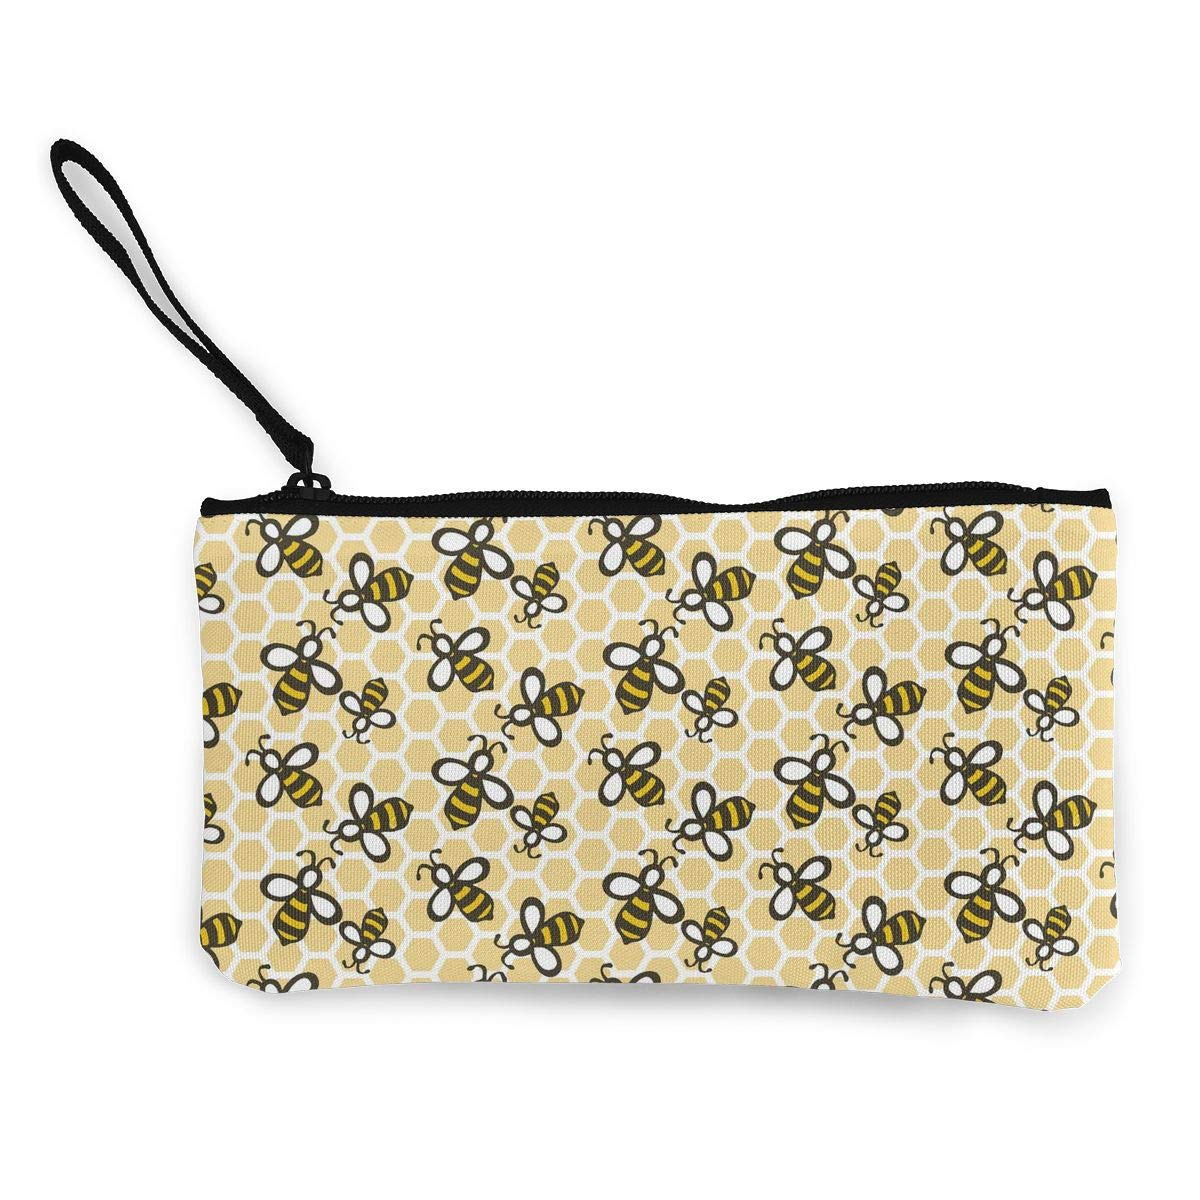 Honey Bees Zipper Canvas Coin Purse Wallet Make Up Bag,Cellphone Bag With Handle